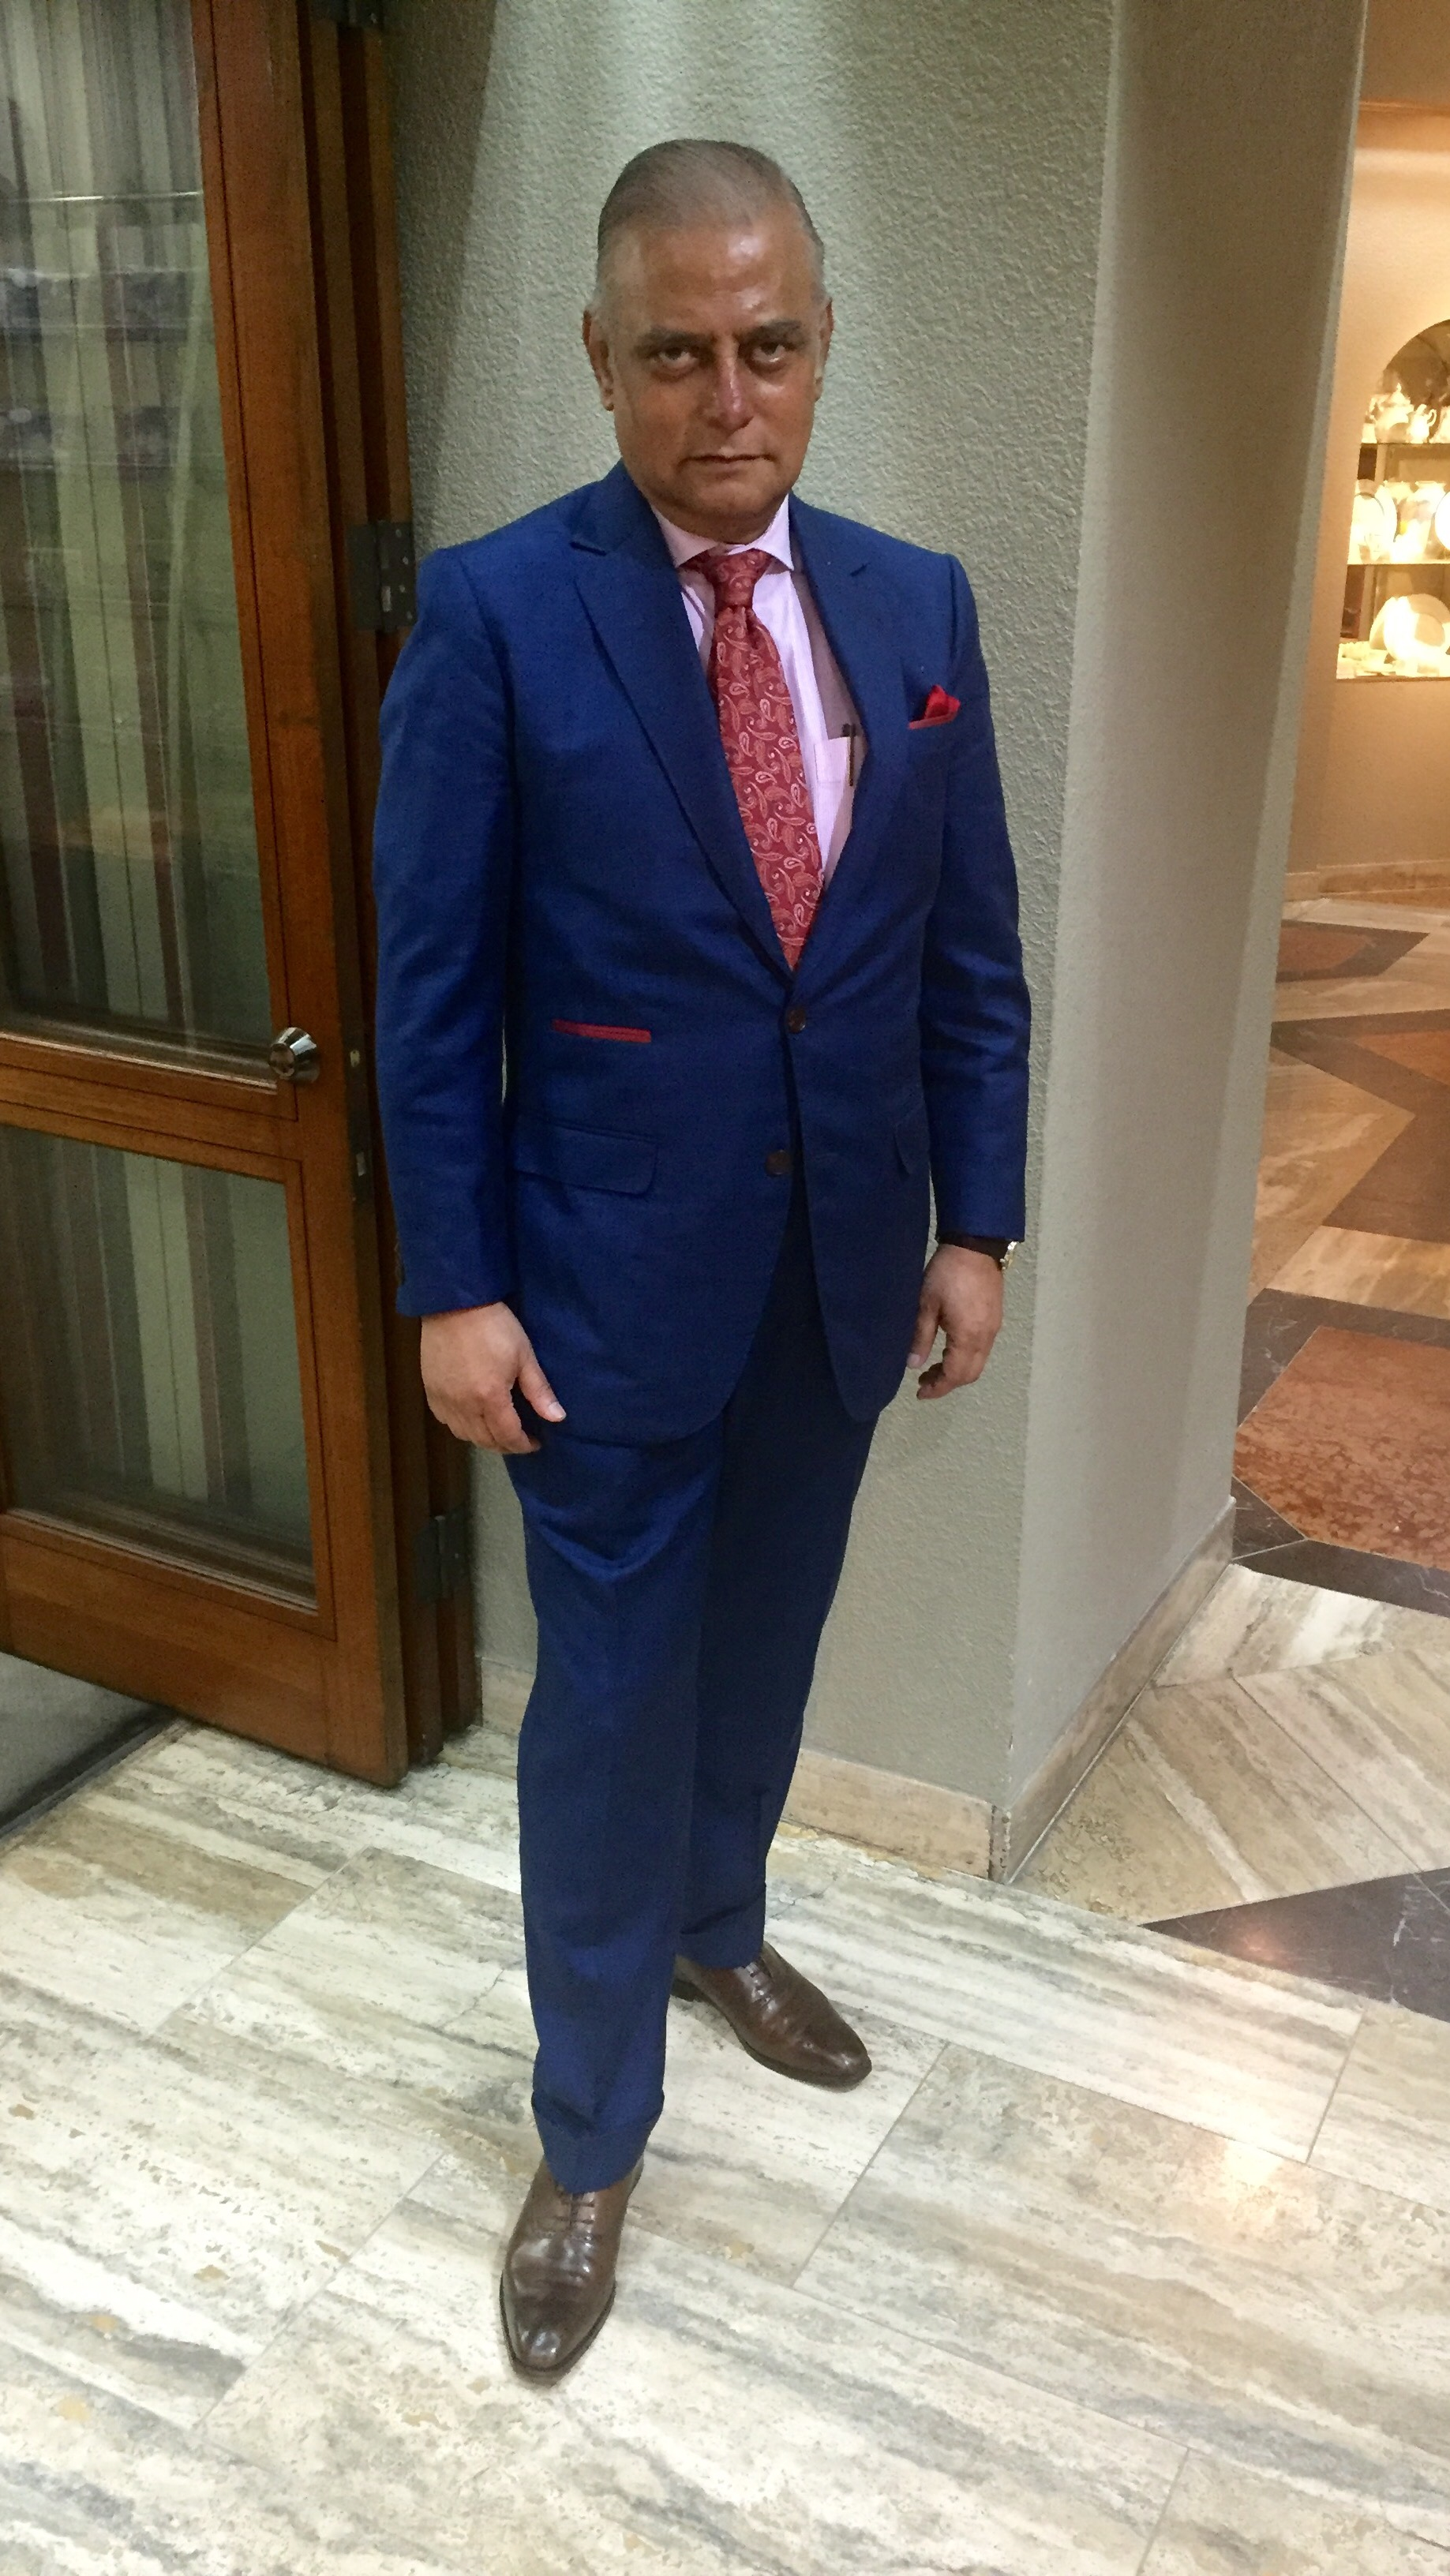 Dapper Bespoke This Is A Blog About Men S Style